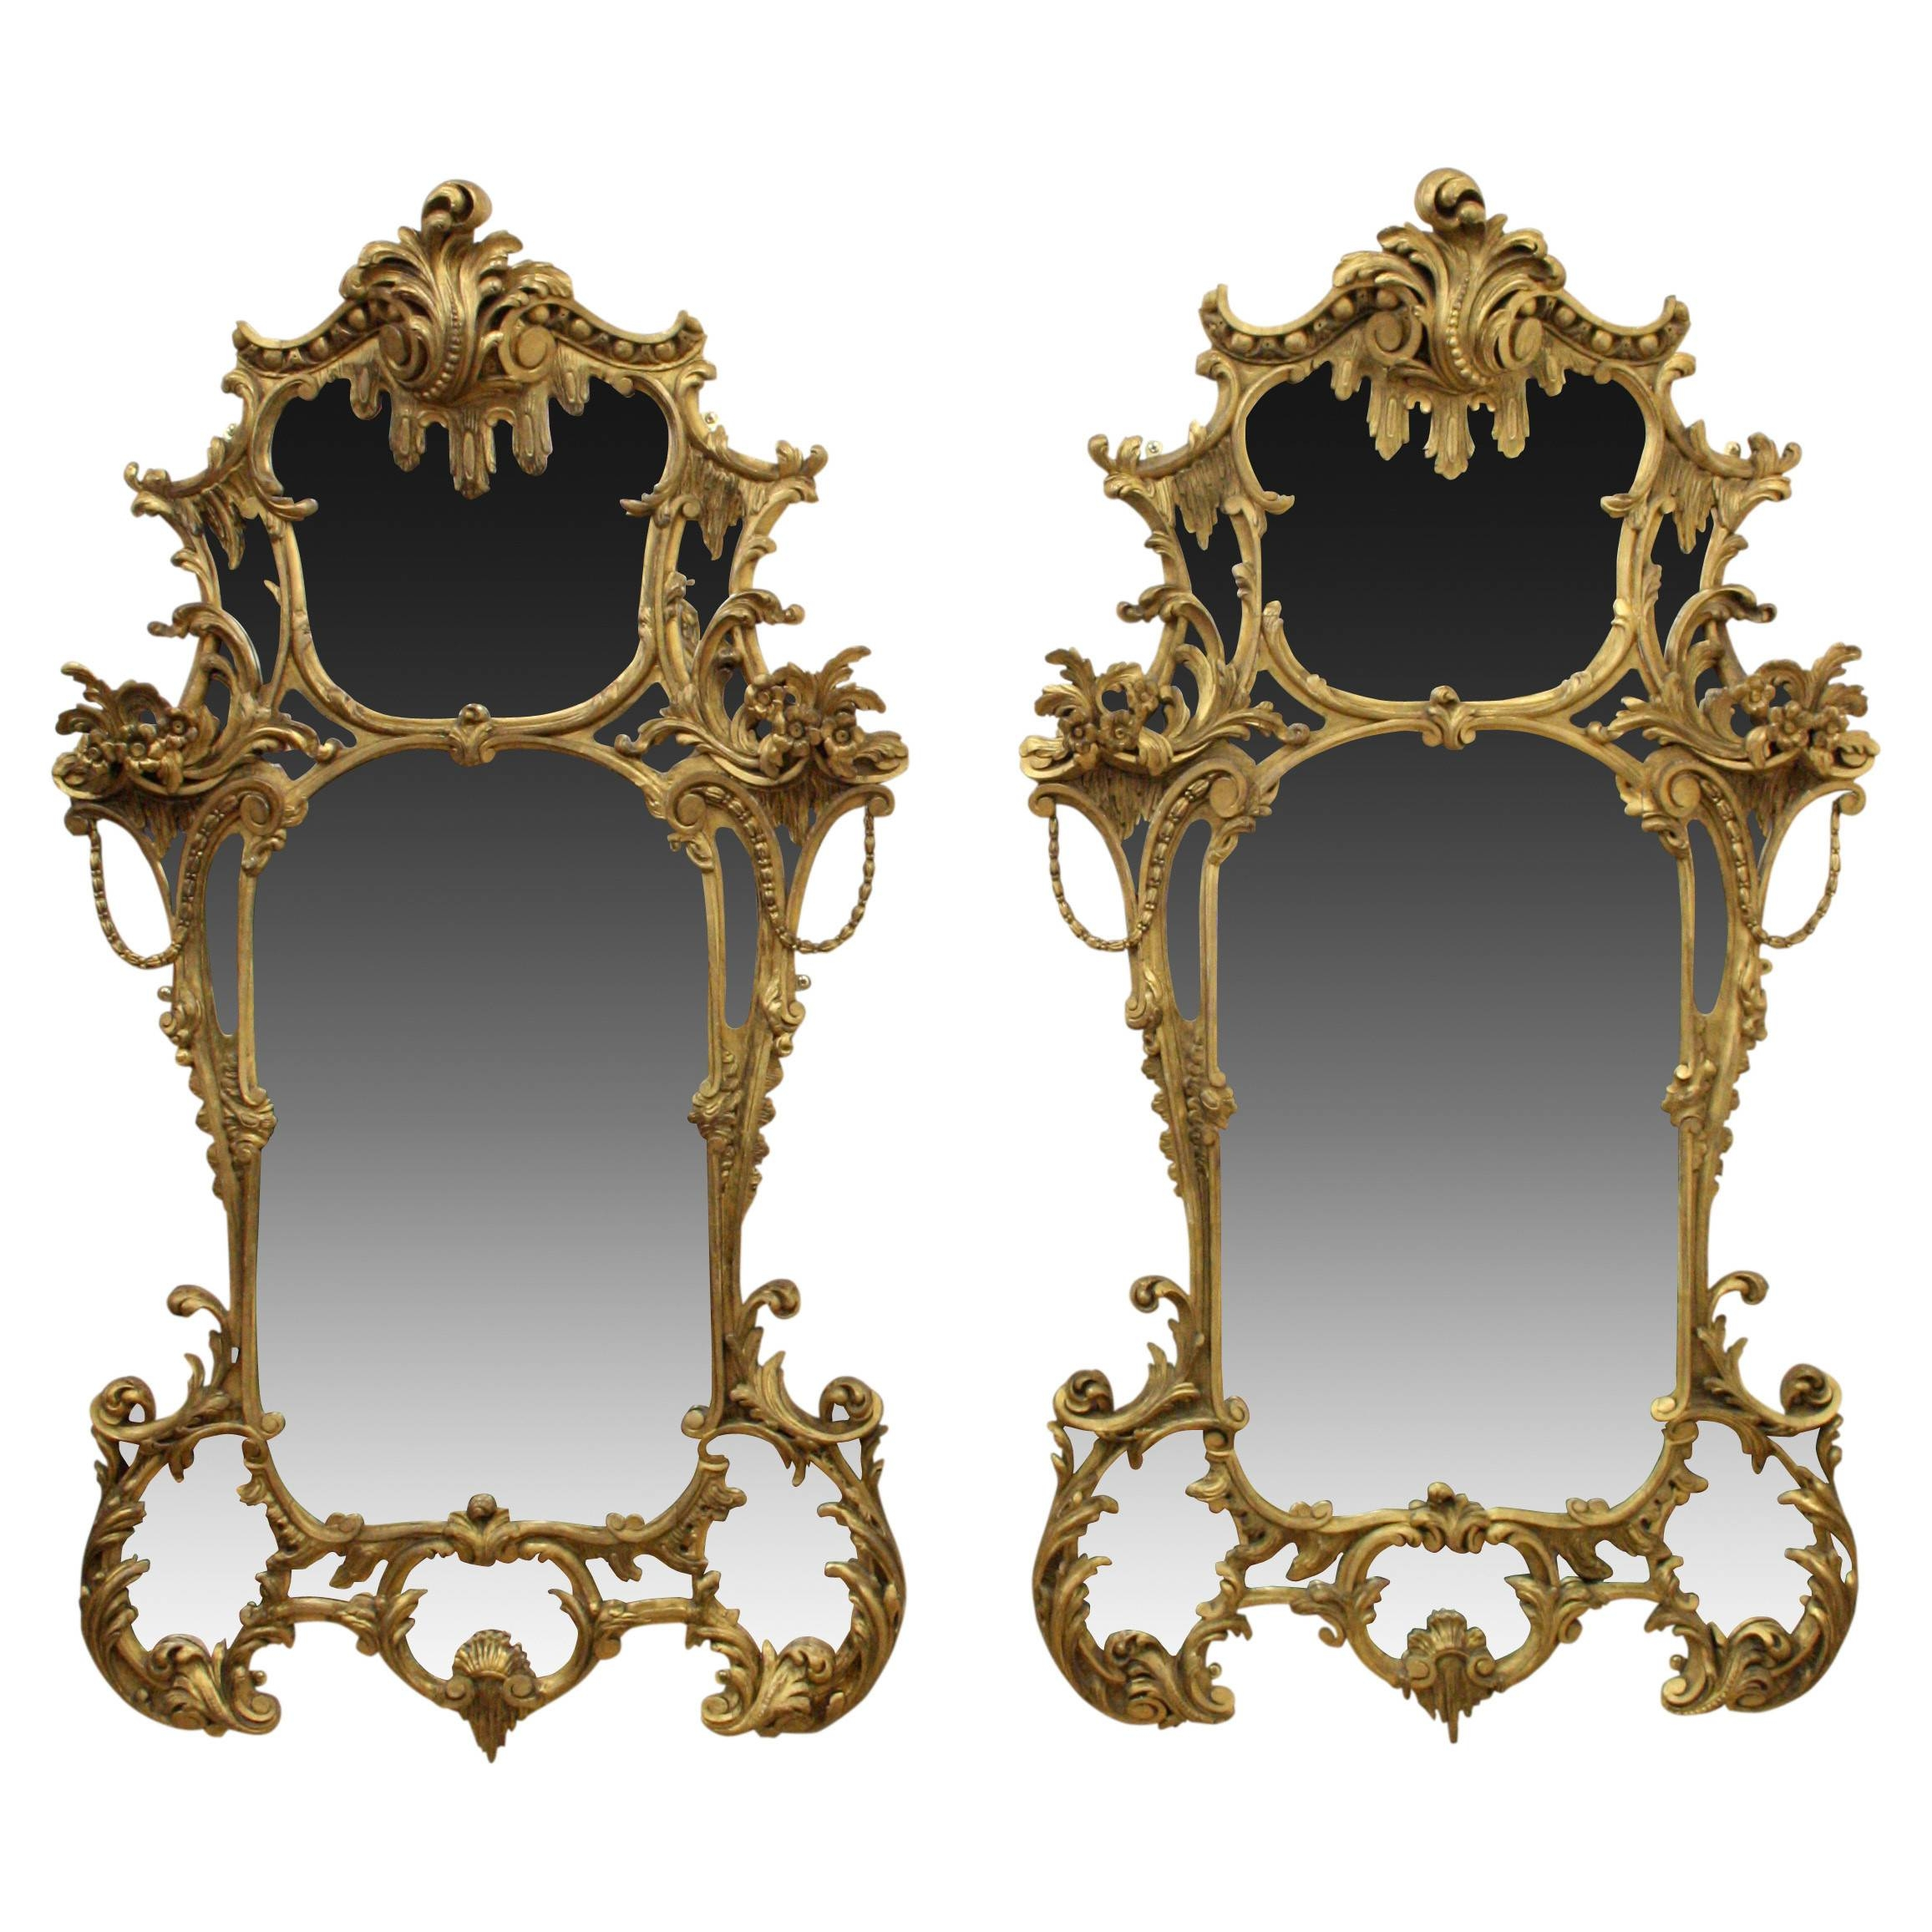 Pair Of Rococo Style Gilt Mirrors (C. 1860 United Kingdom) From pertaining to Rococo Style Mirrors (Image 8 of 15)